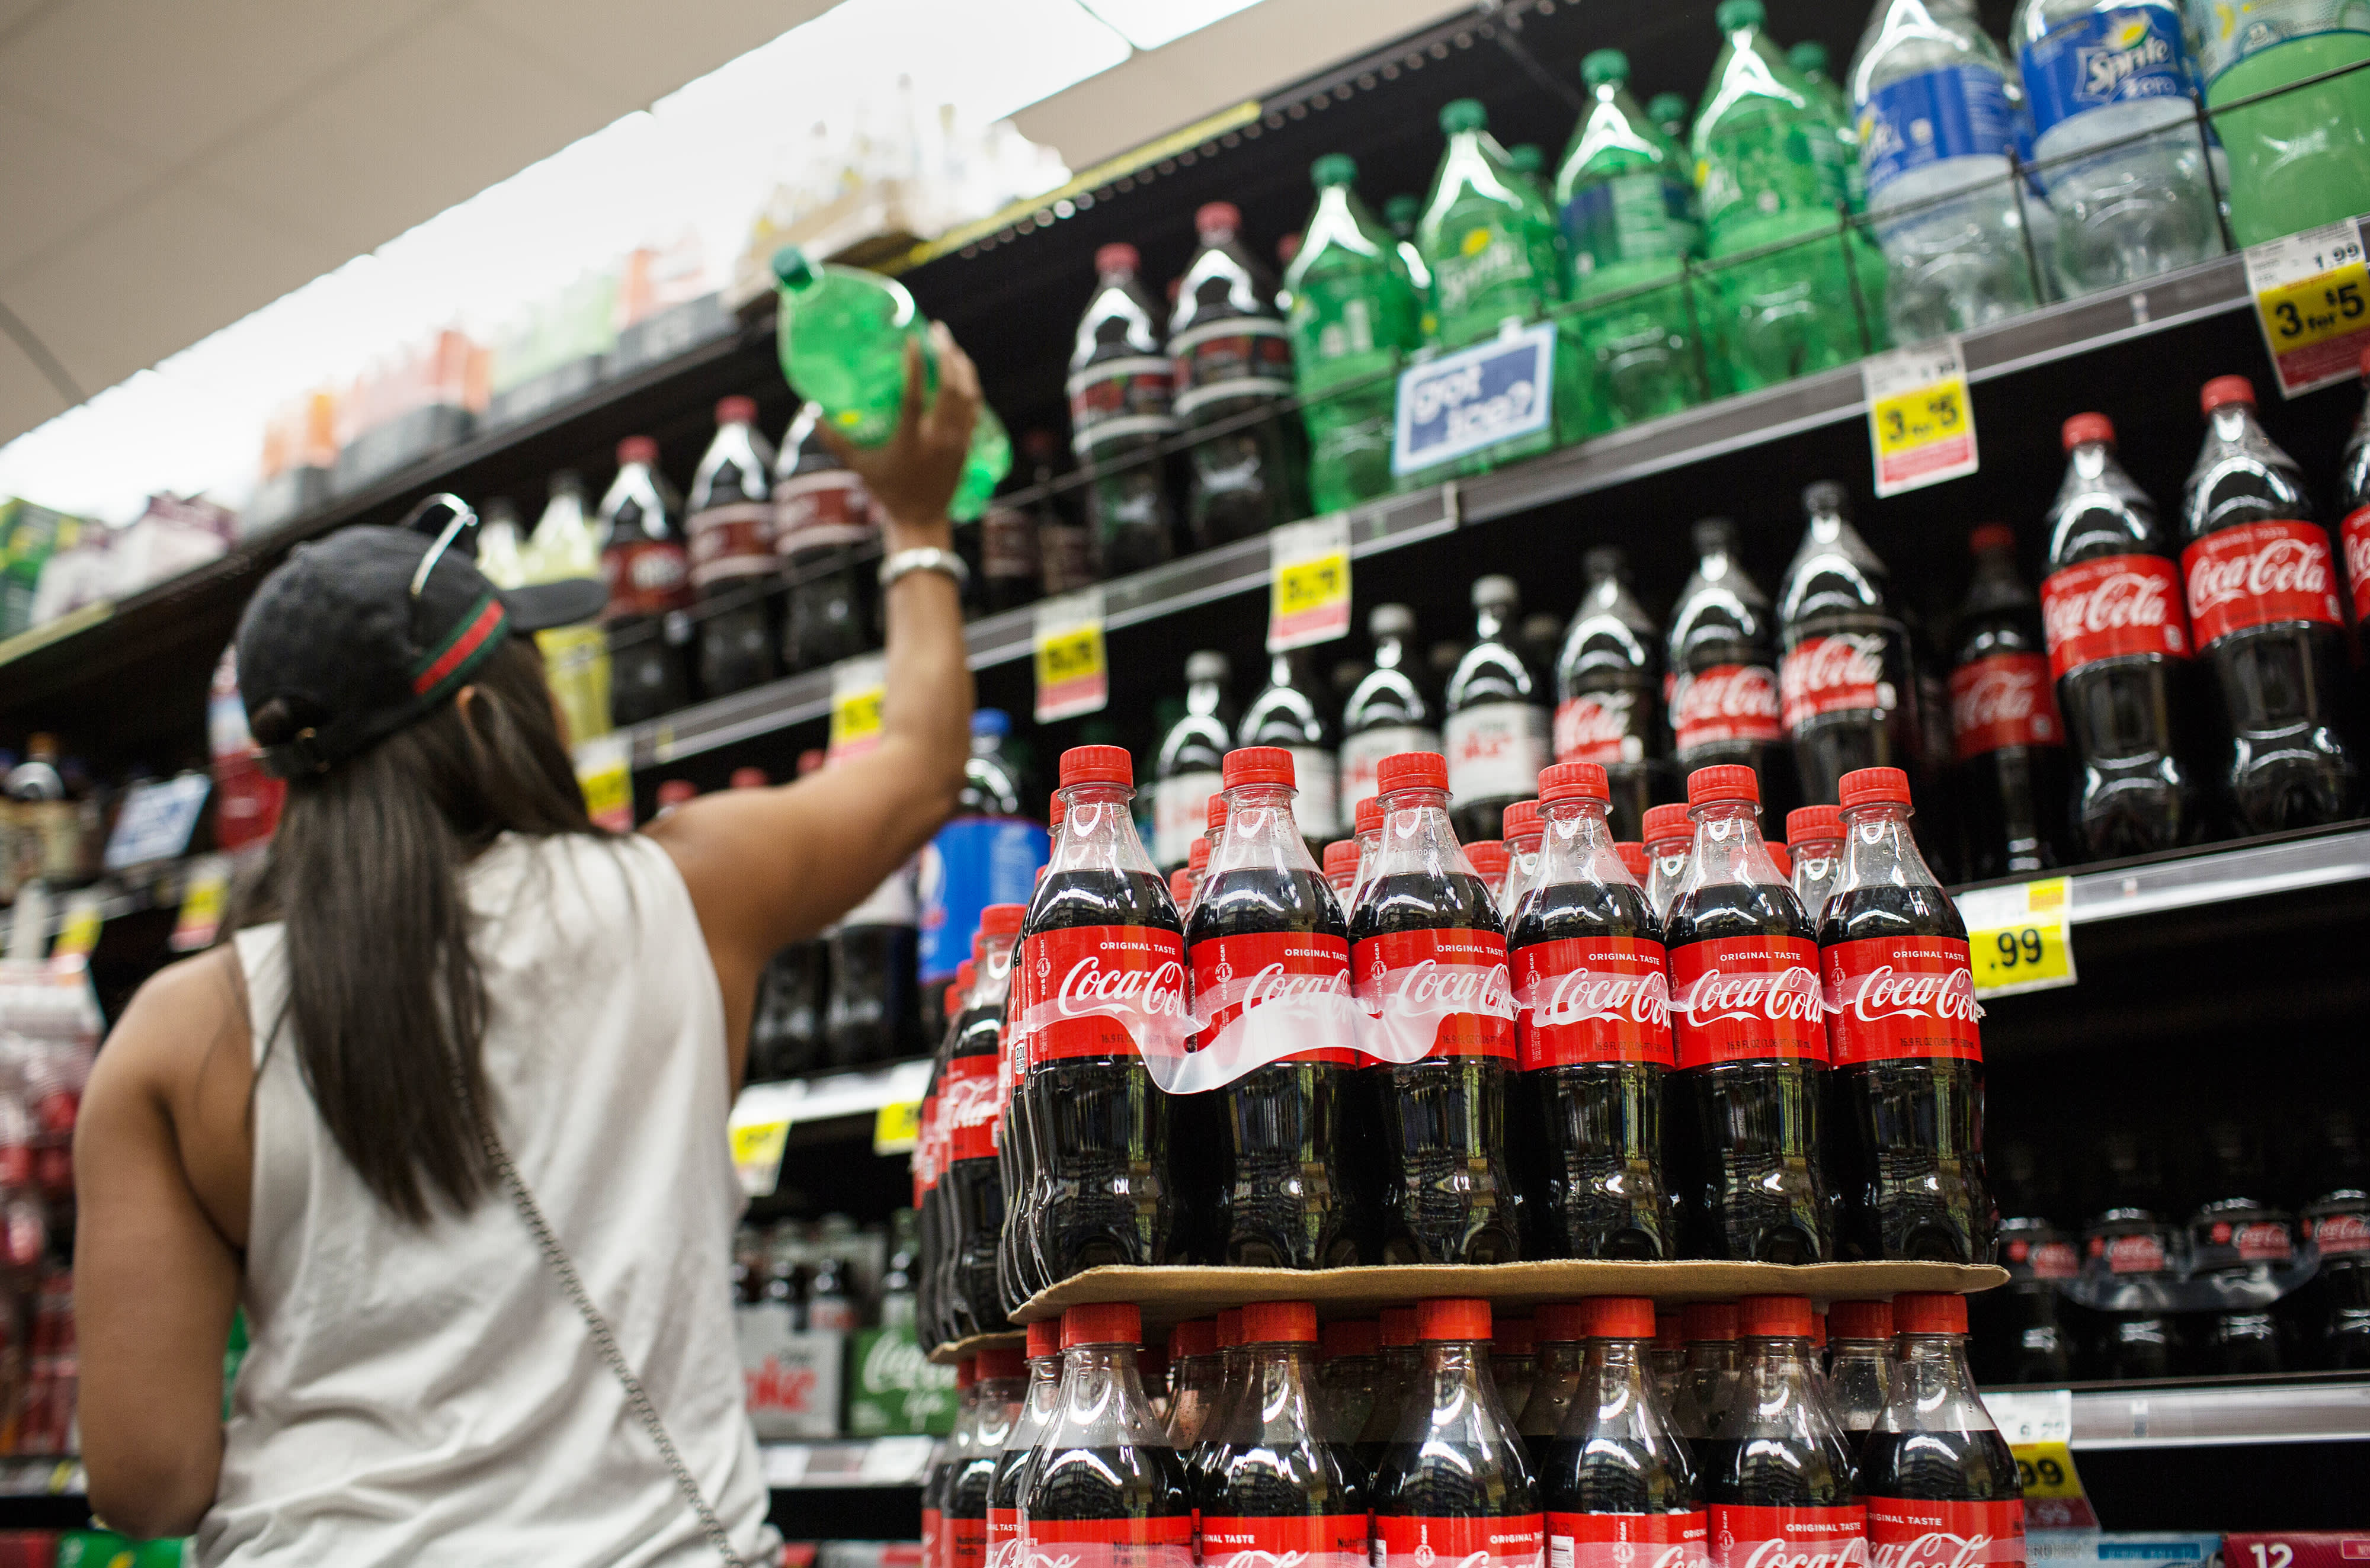 Morgan Stanley upgrades Coca-Cola to overweight: 'Coke is now our top mega-cap staples pick'